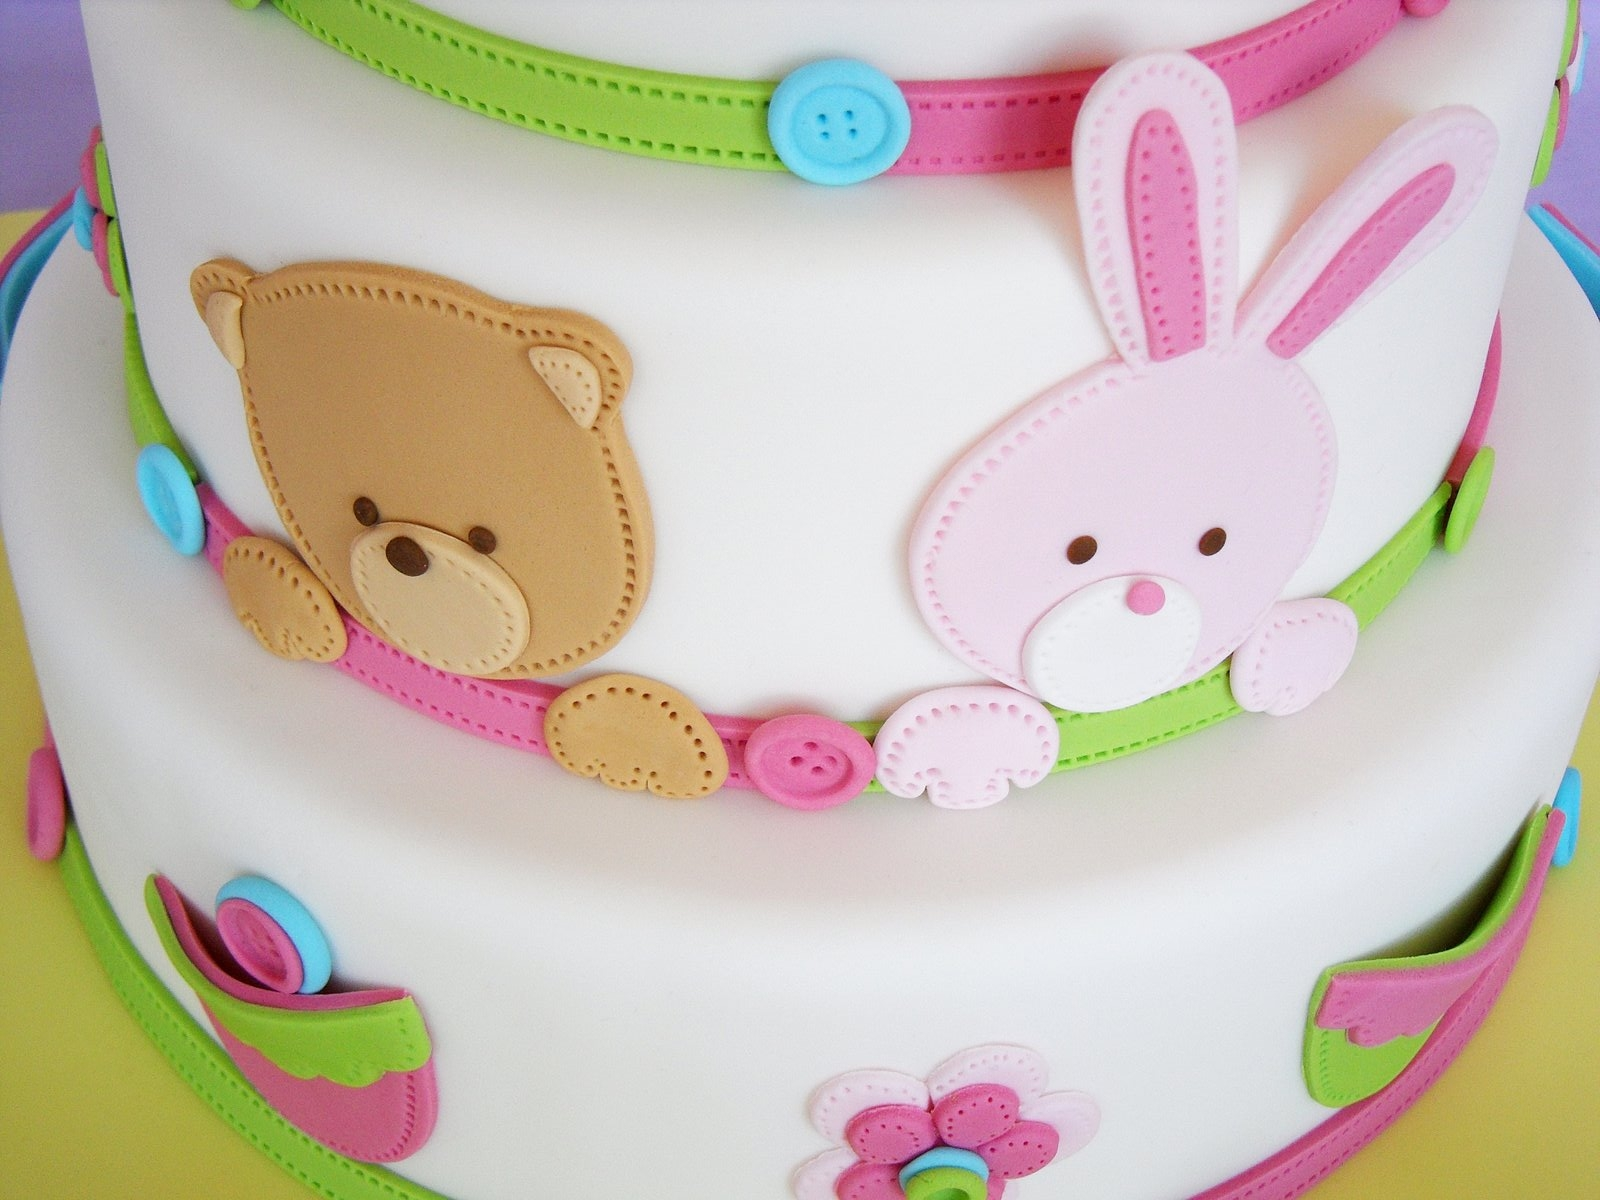 Cake Decorations Baby Shoes : Baby Shoes Cake - CakeCentral.com